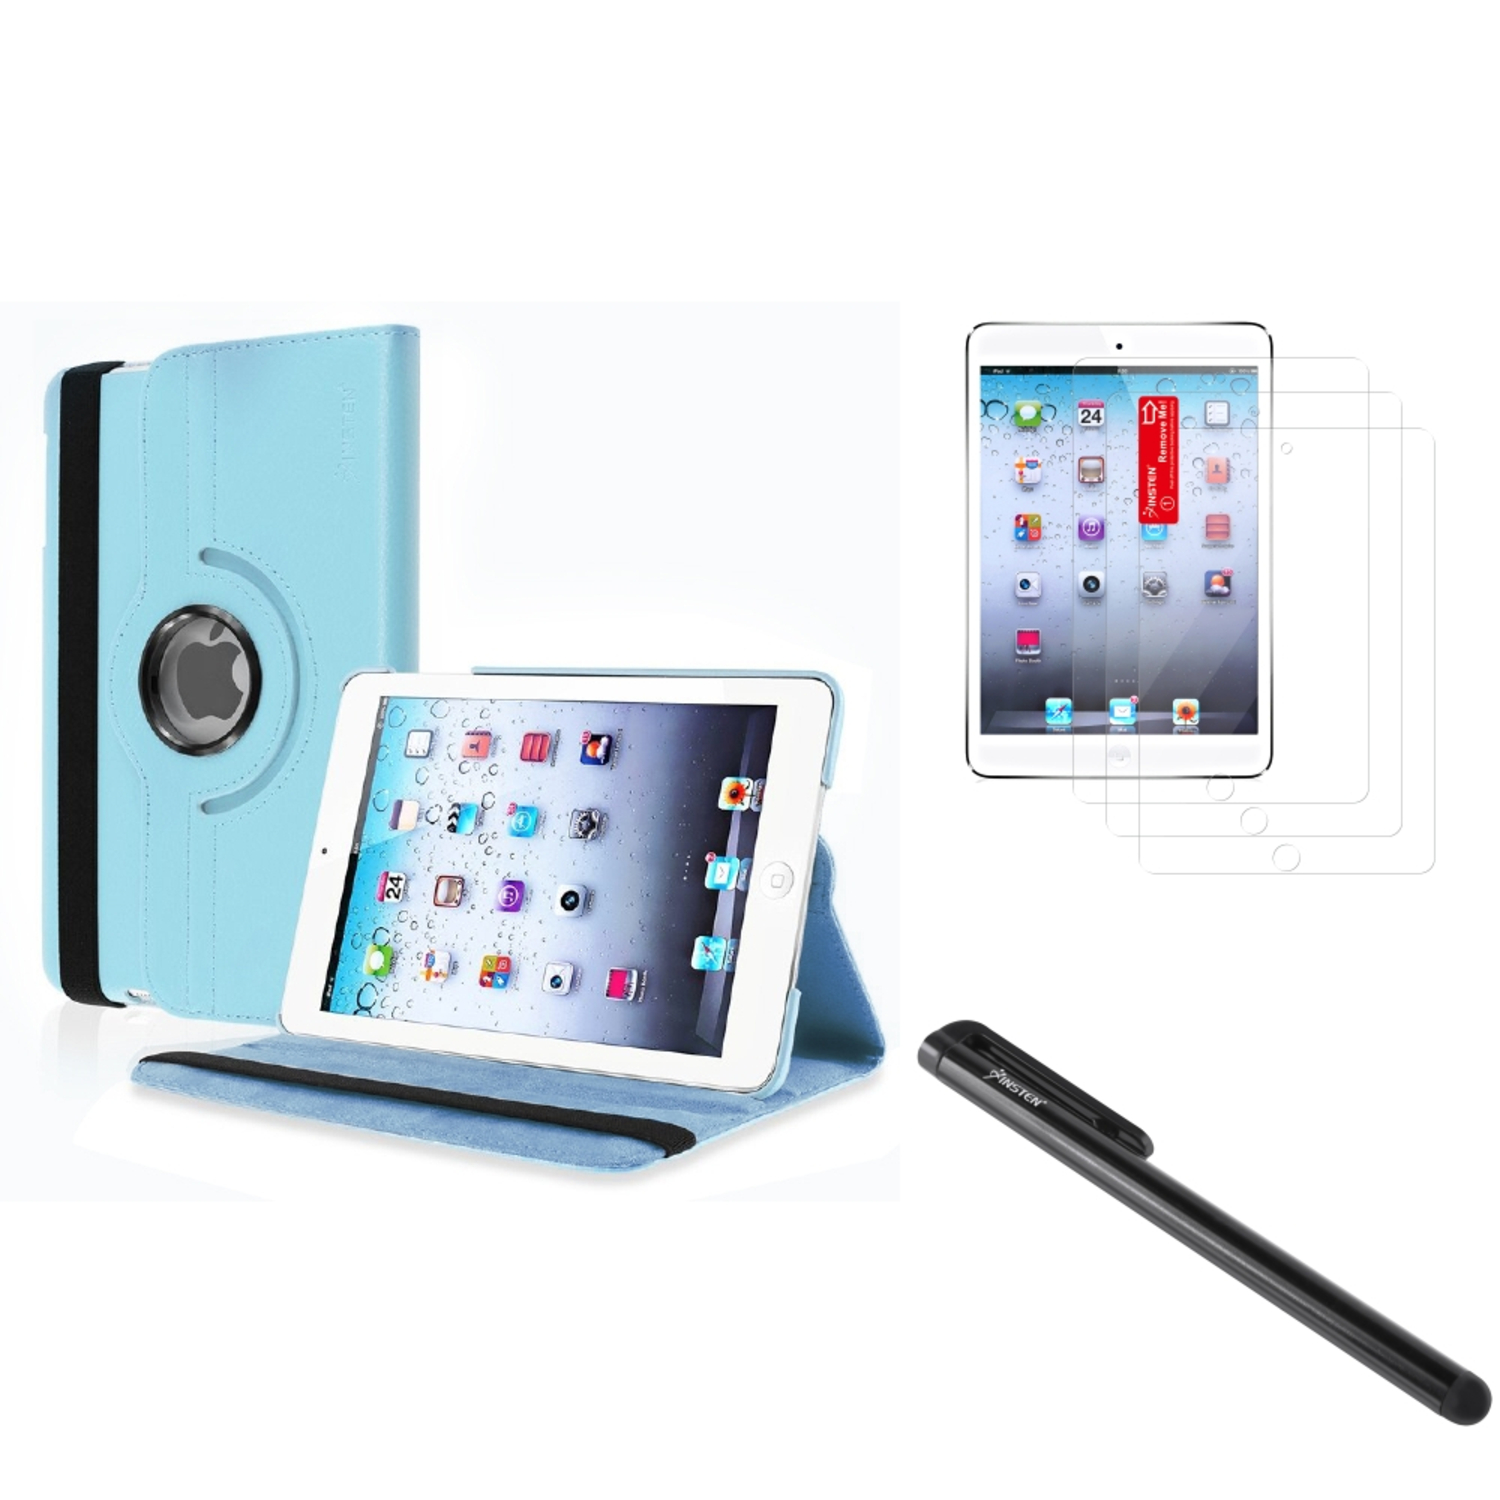 Insten For Apple iPad Mini 3 / 1 / 2 with Retina Display PU Leather Case Cover Light Blue (Supports Auto Sleep/Wake)